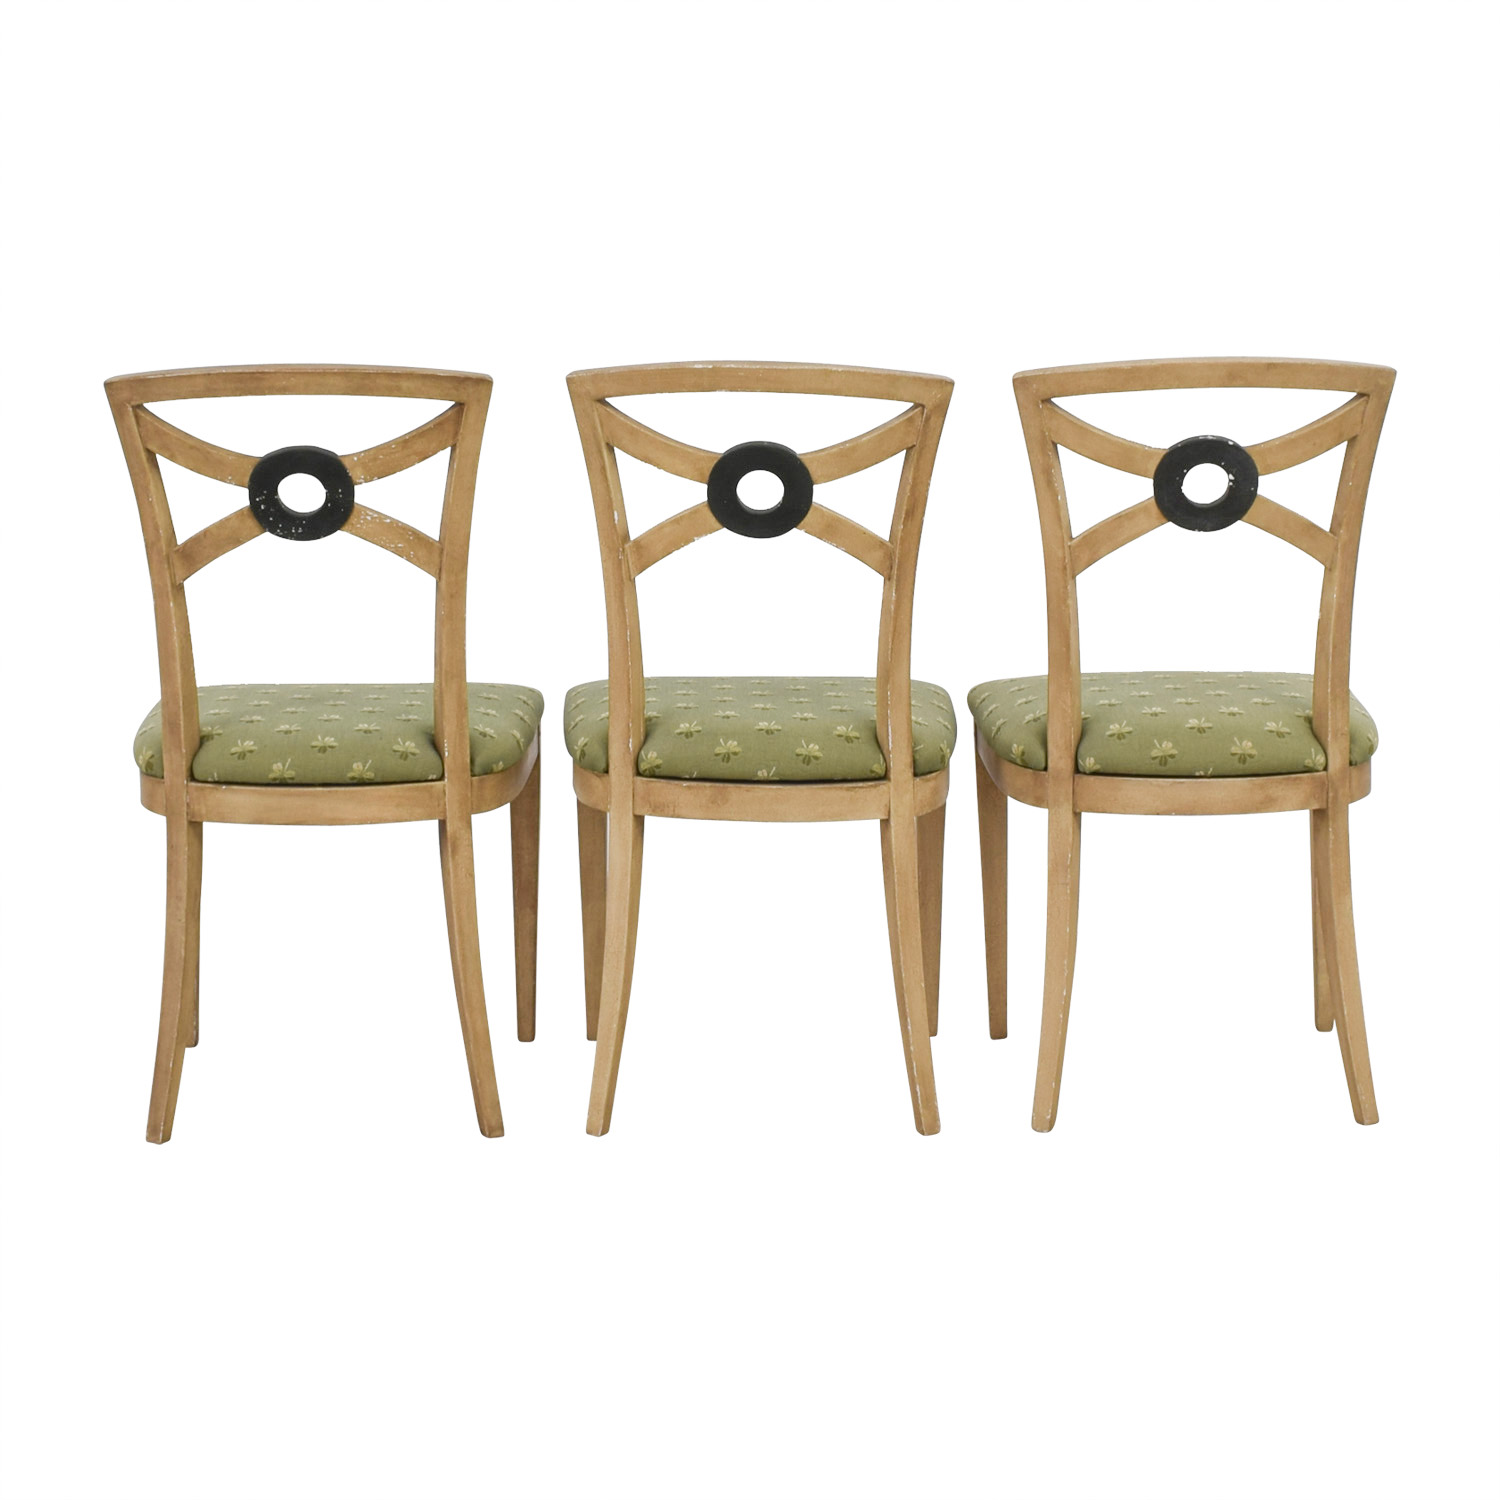 Painted Four Leaf Clover Chairs dimensions